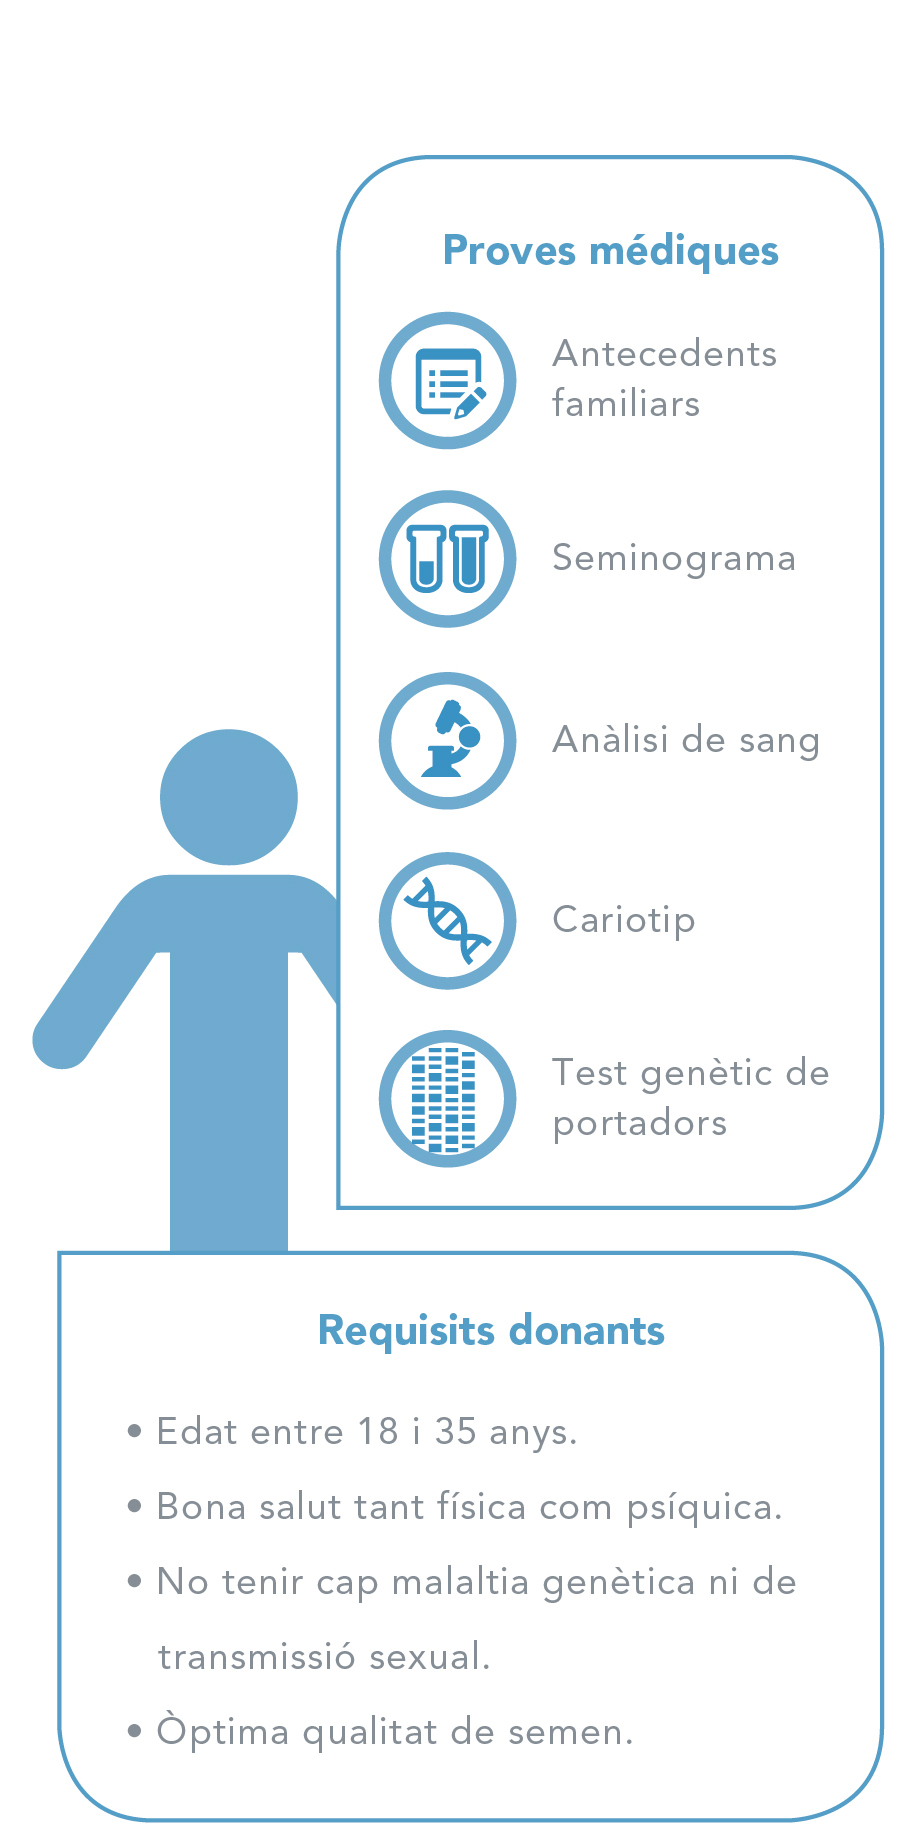 Requisits donants d'òvuls - Homes